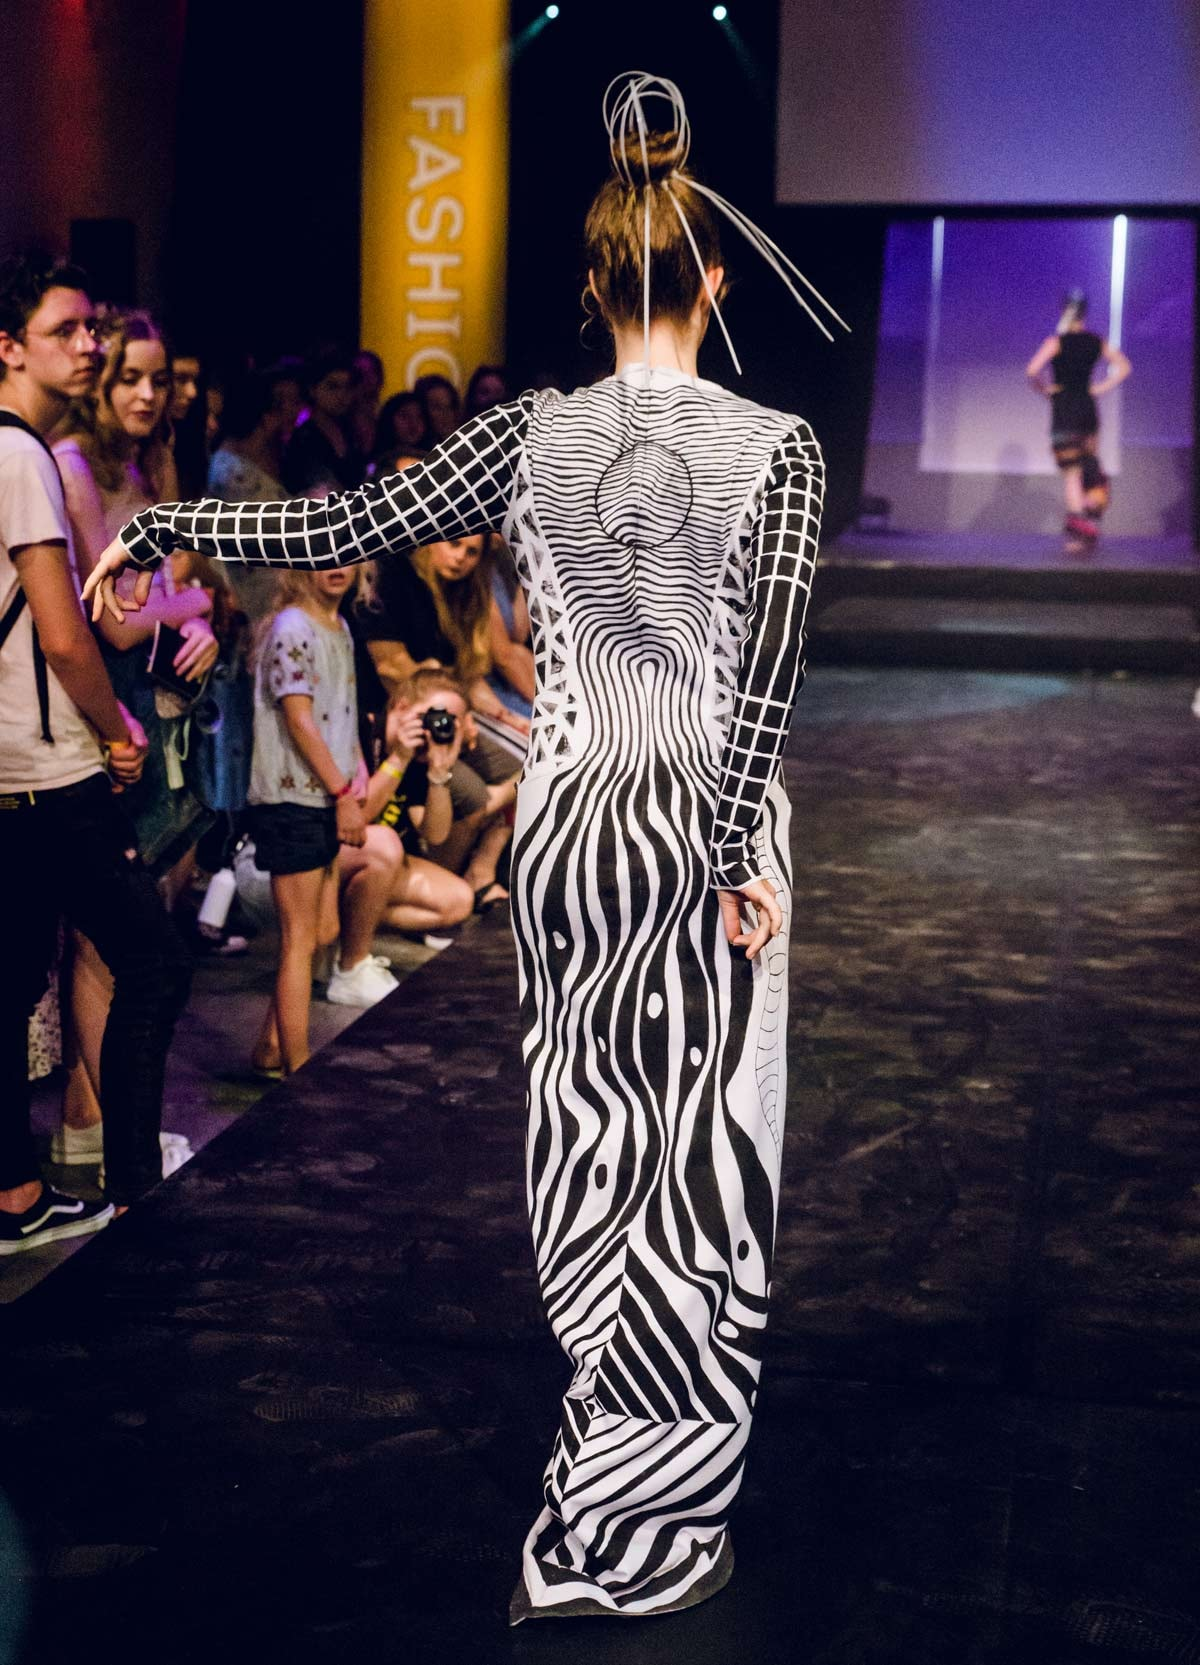 In pictures: Fifteen-year-old wins Dutch young talent fashion prize